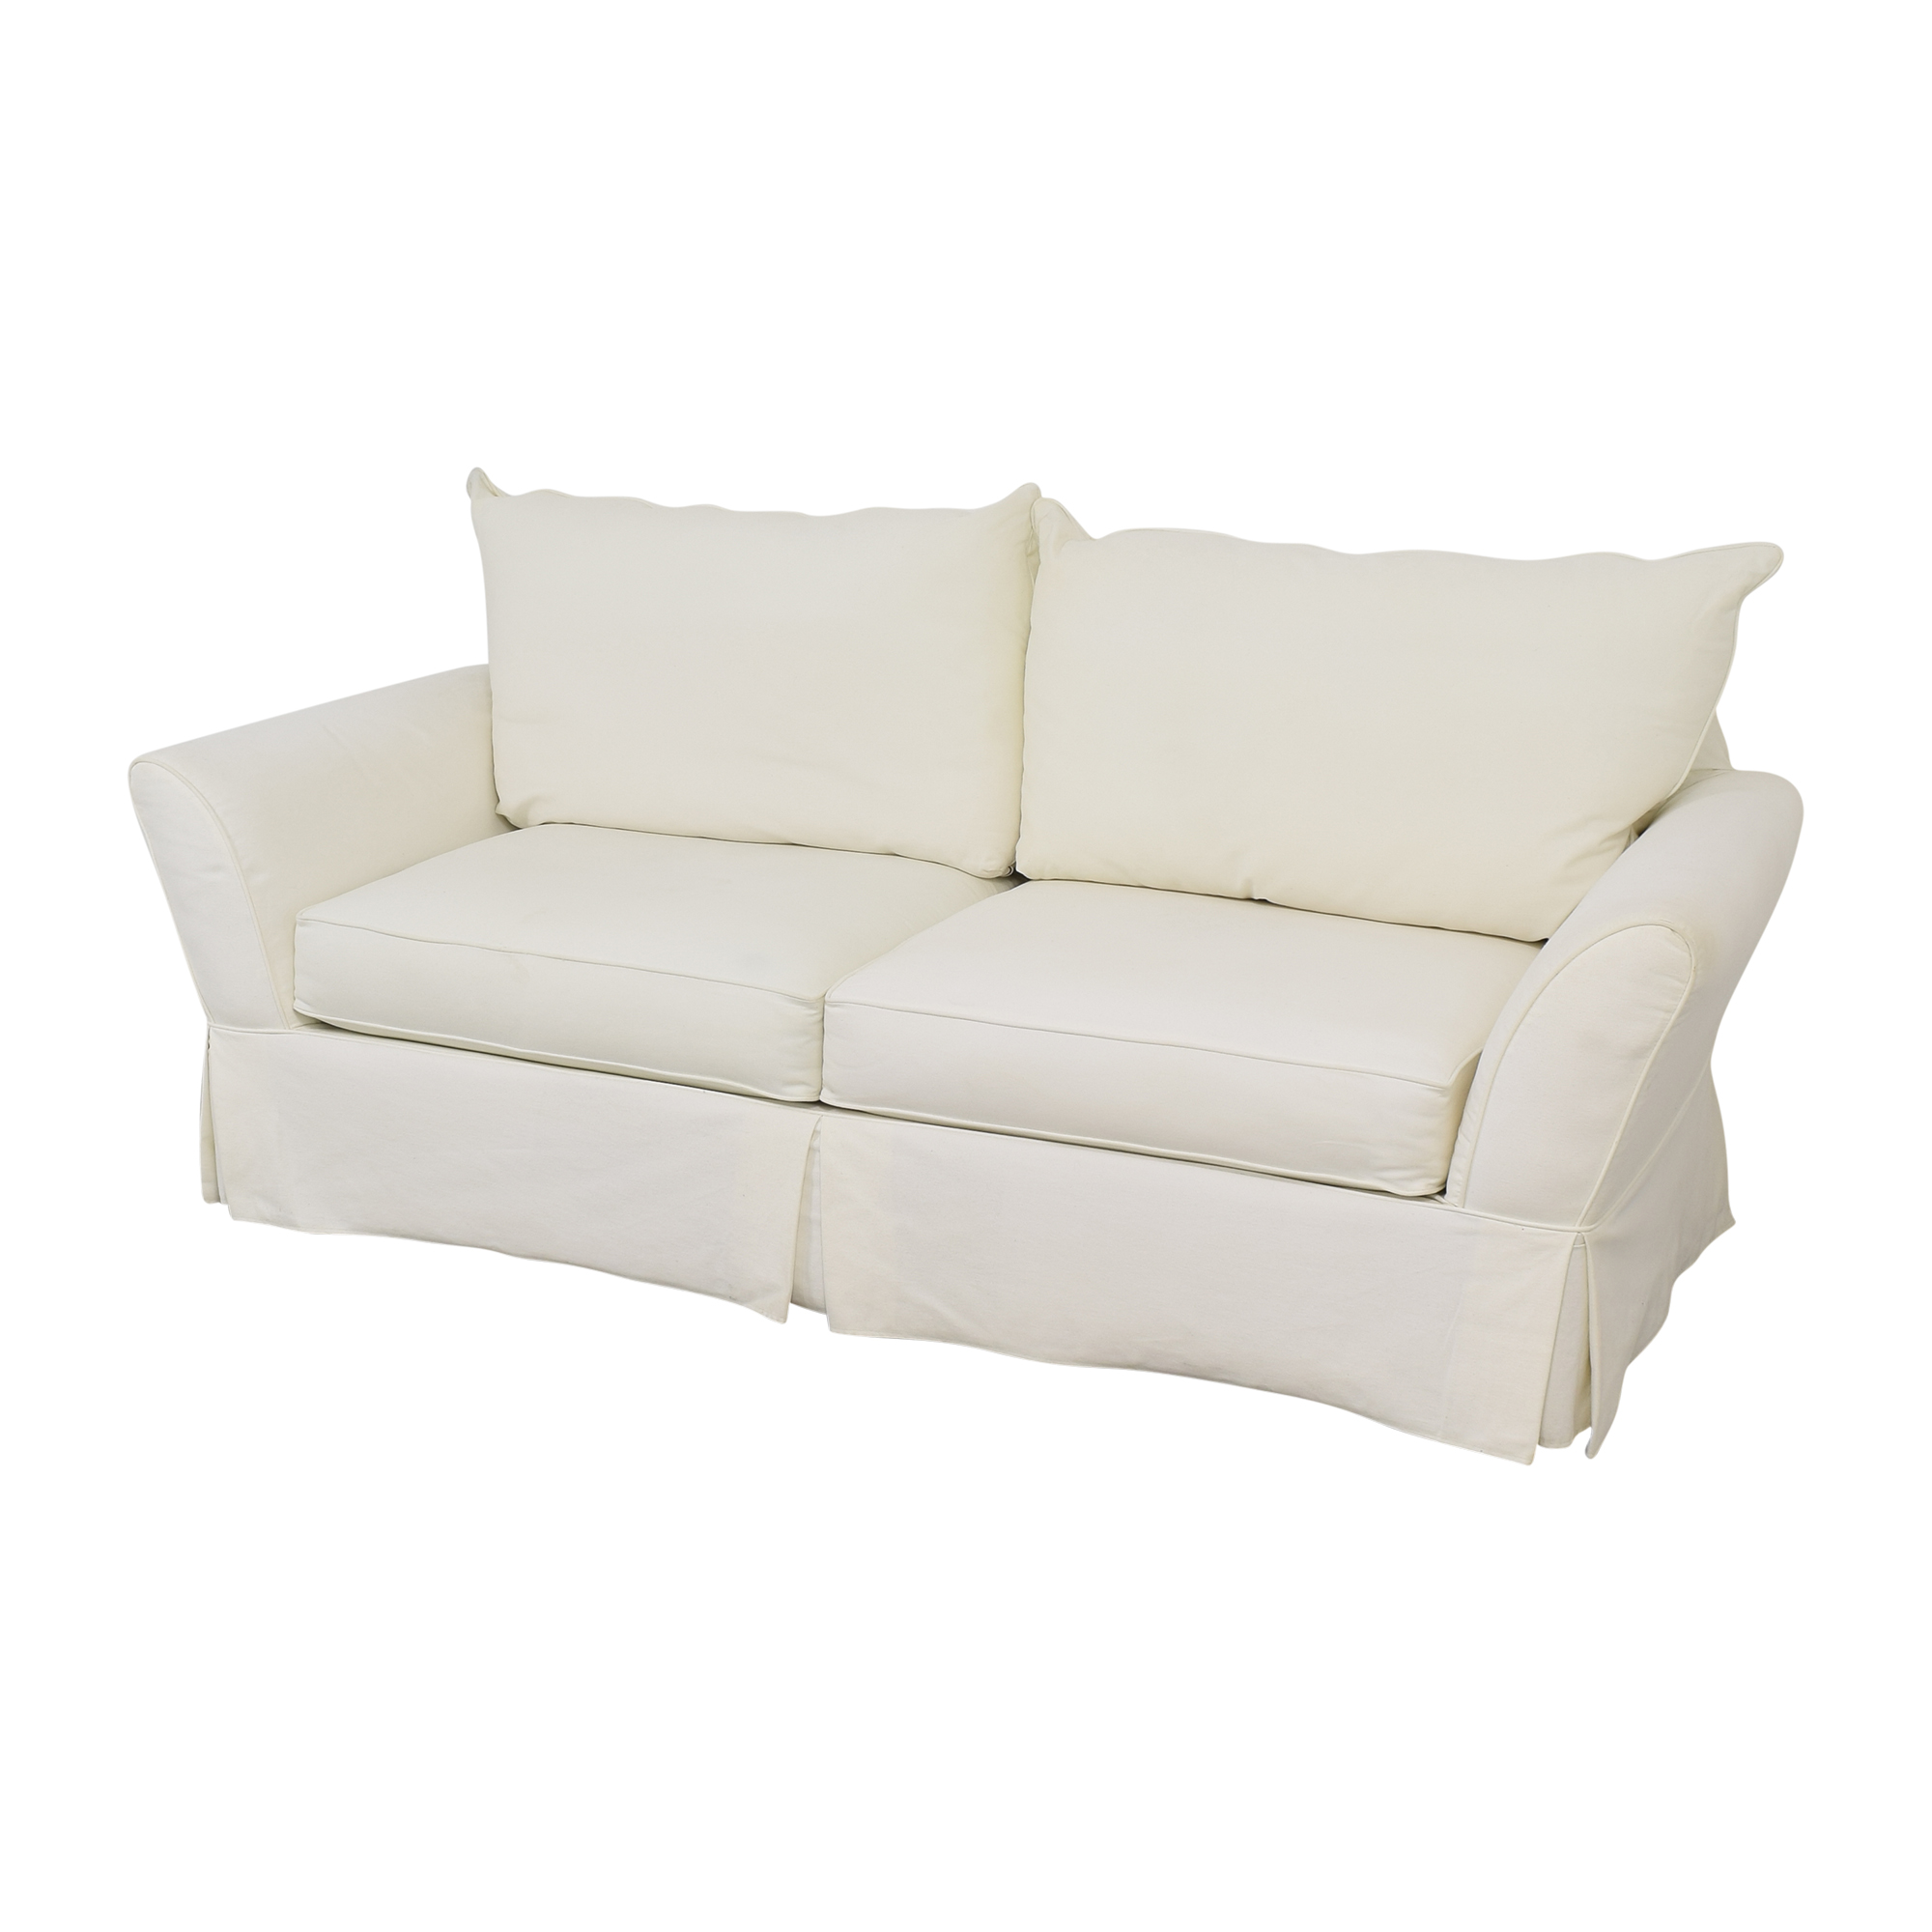 American Signature American Signature Two Cushion Sofa second hand